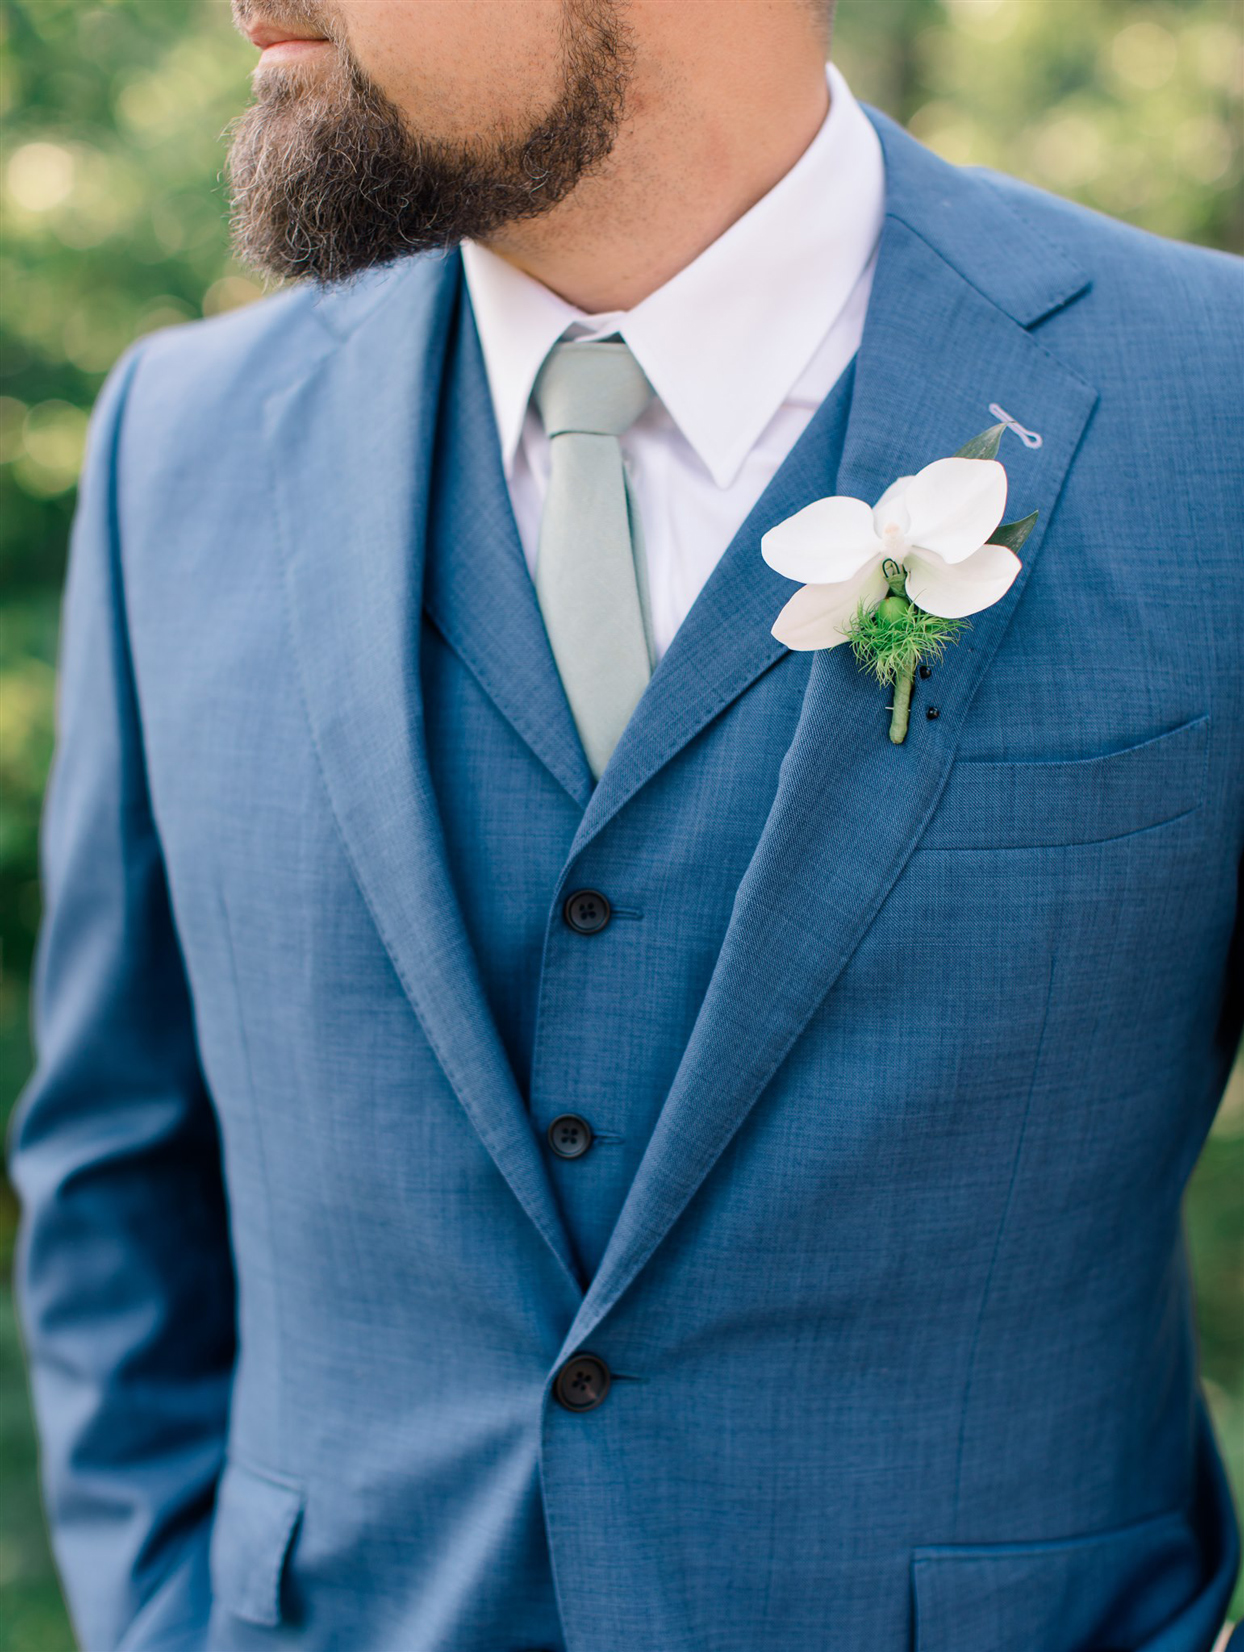 groom wearing blue suit and white orchid boutonniere